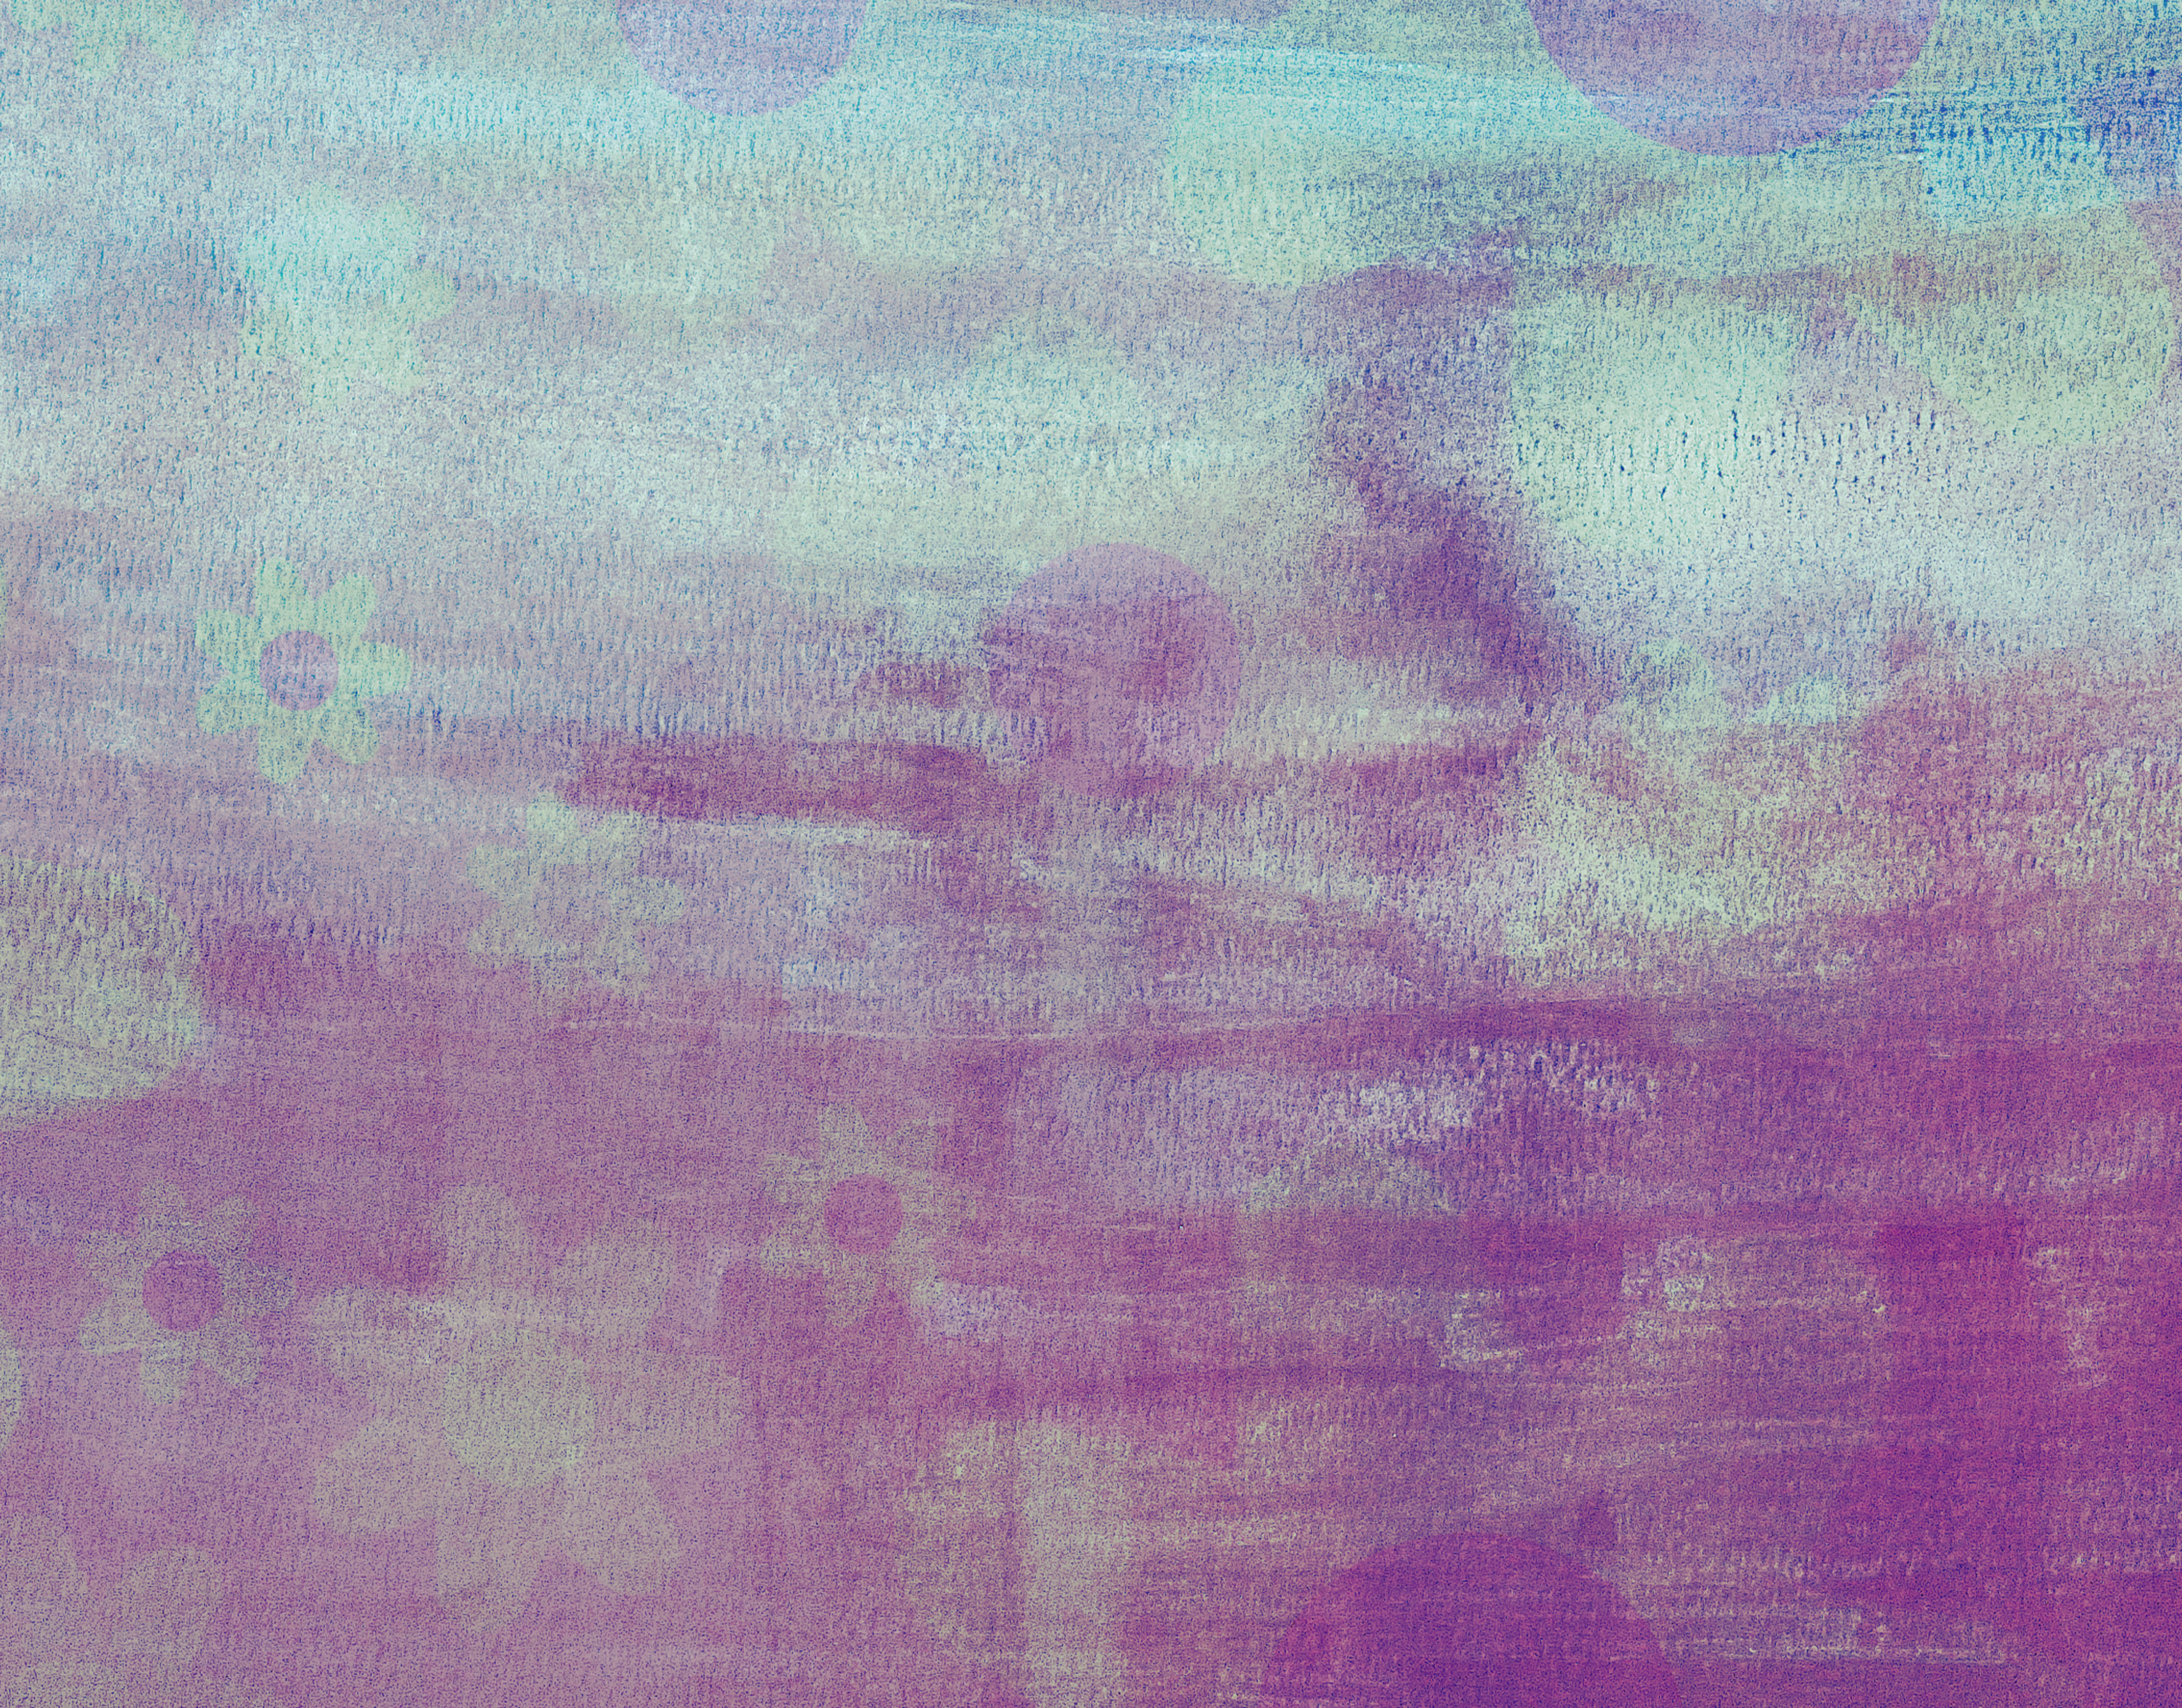 Art Texture - Colored Canvas 1 | You may use this texture fr… | Flickr